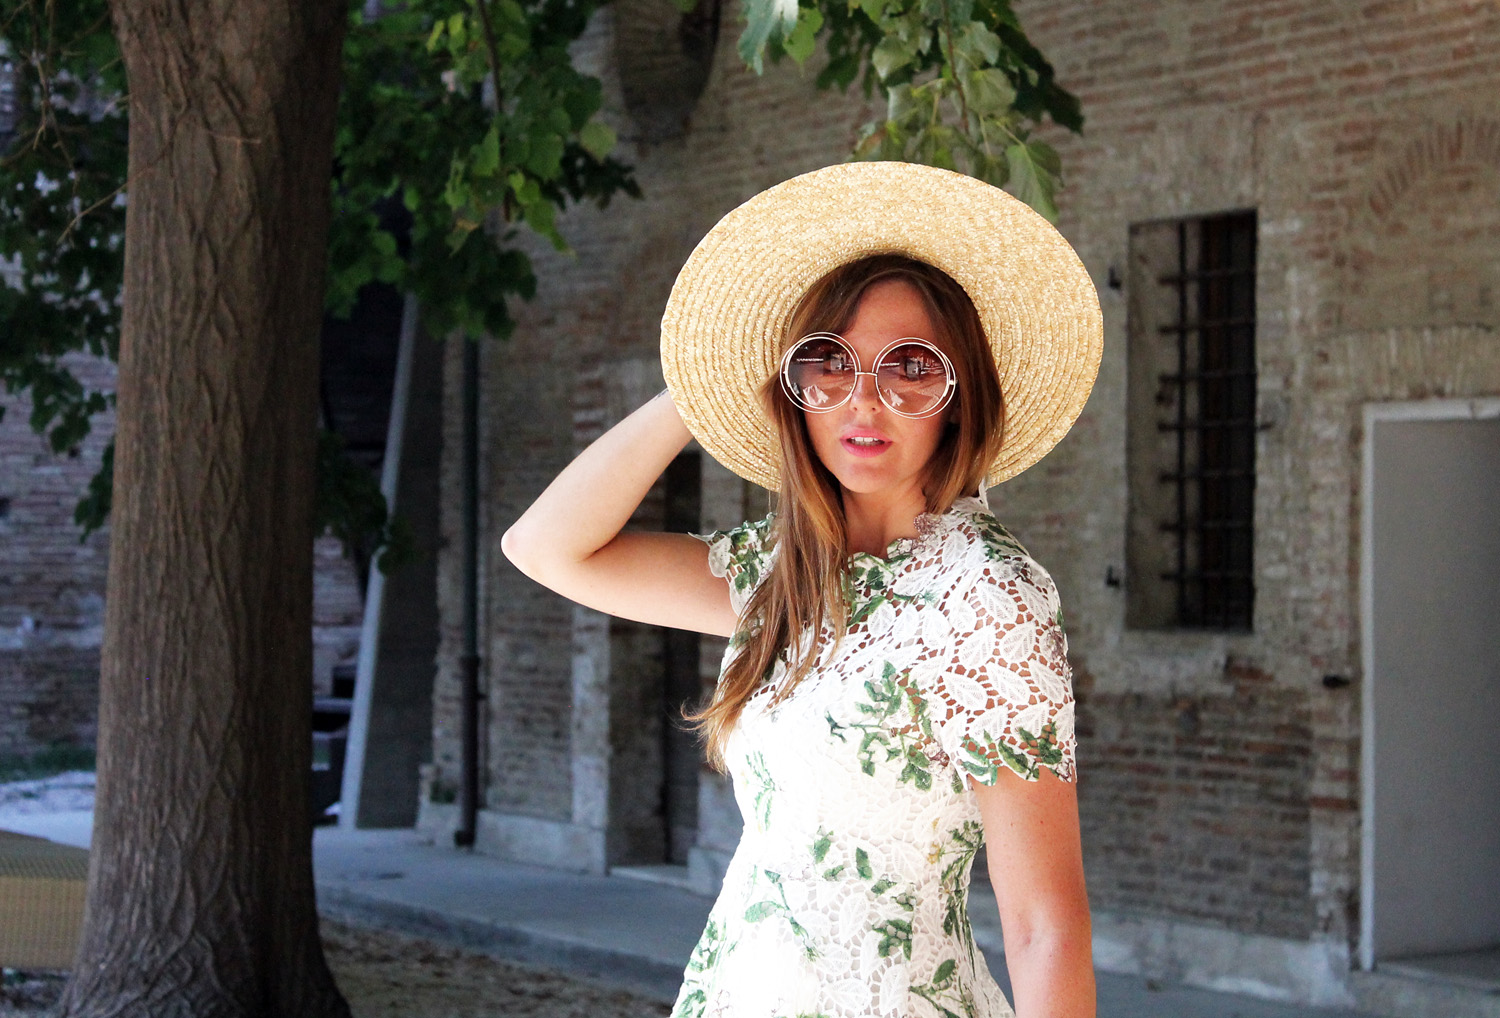 Francesca Focarini fashion blogger italiana